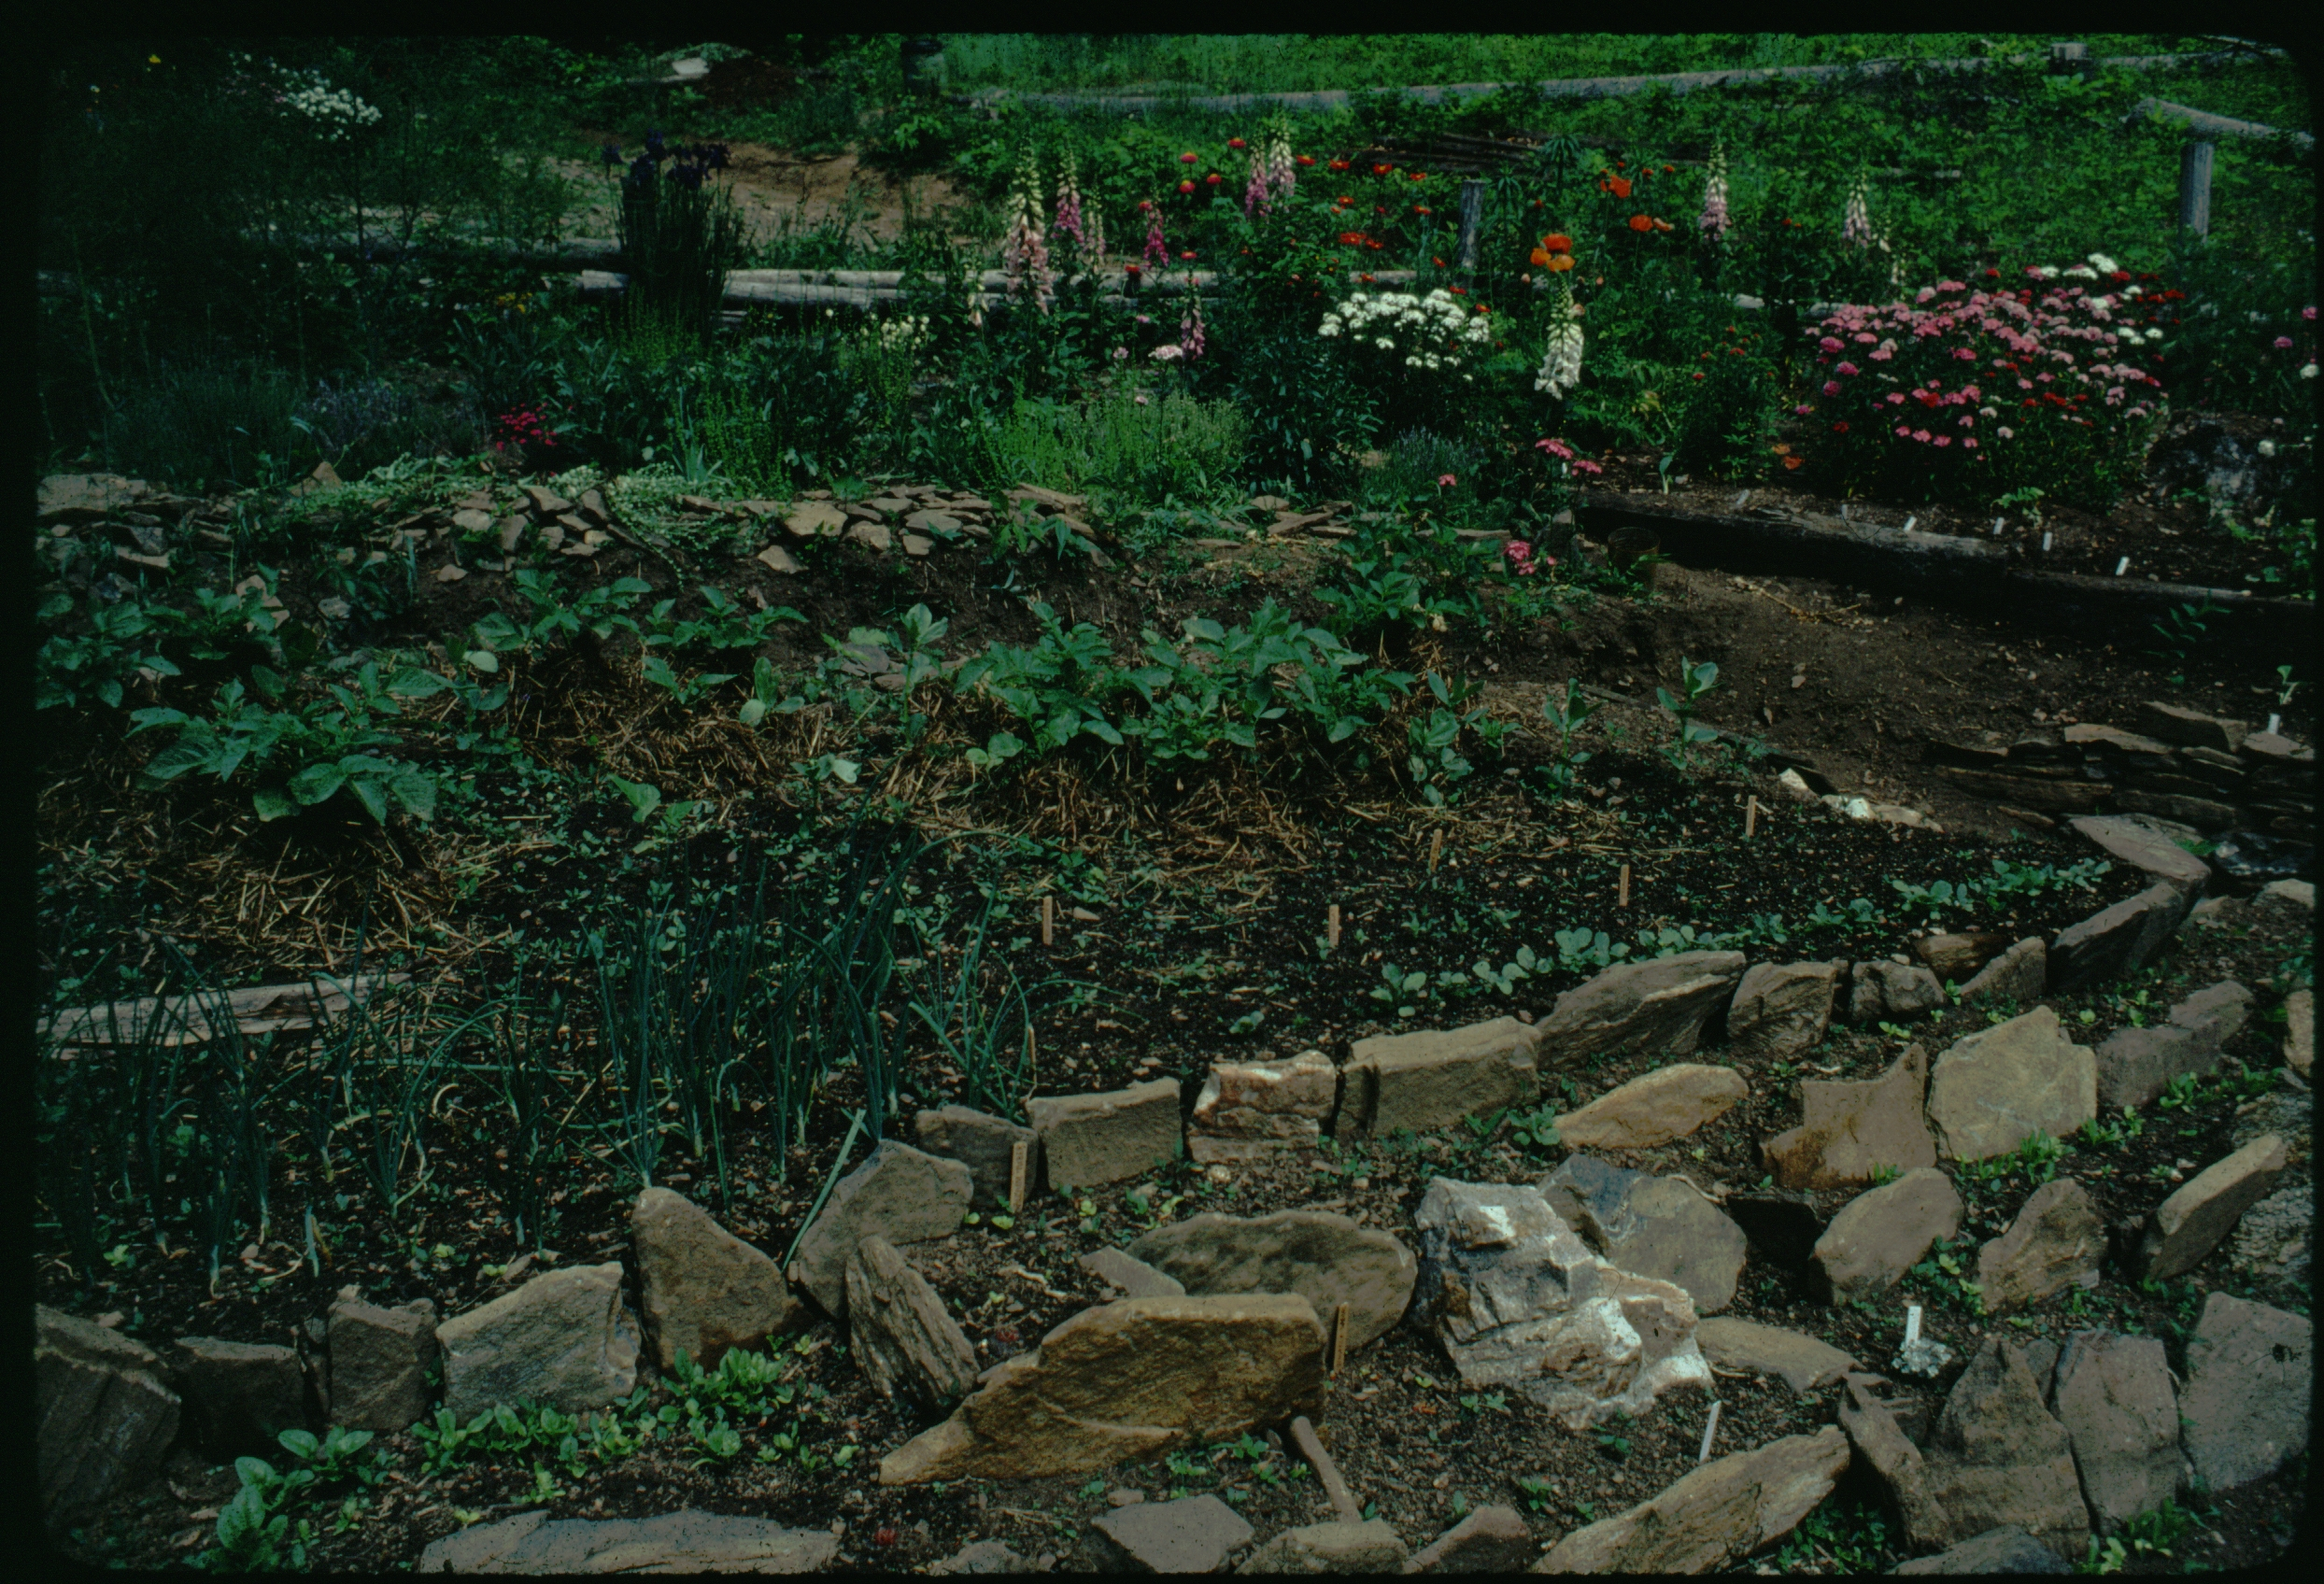 1977 rockwall below lawn.JPG